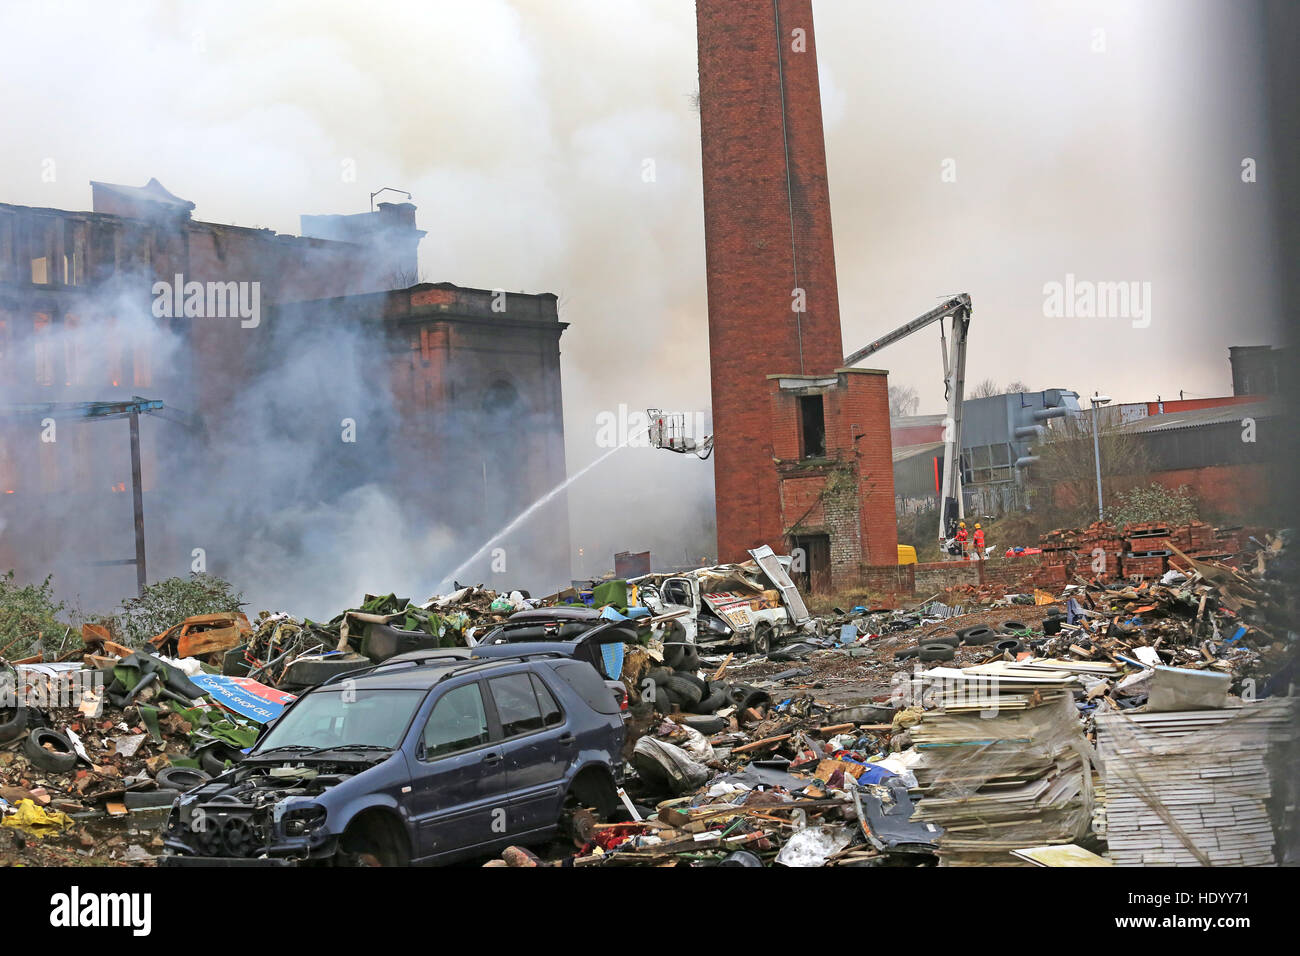 Oldham, UK. 15th Dec, 2016. A yard full of debris and old cars at the scene of a mill fire on Cardwell Street, Oldham, Stock Photo